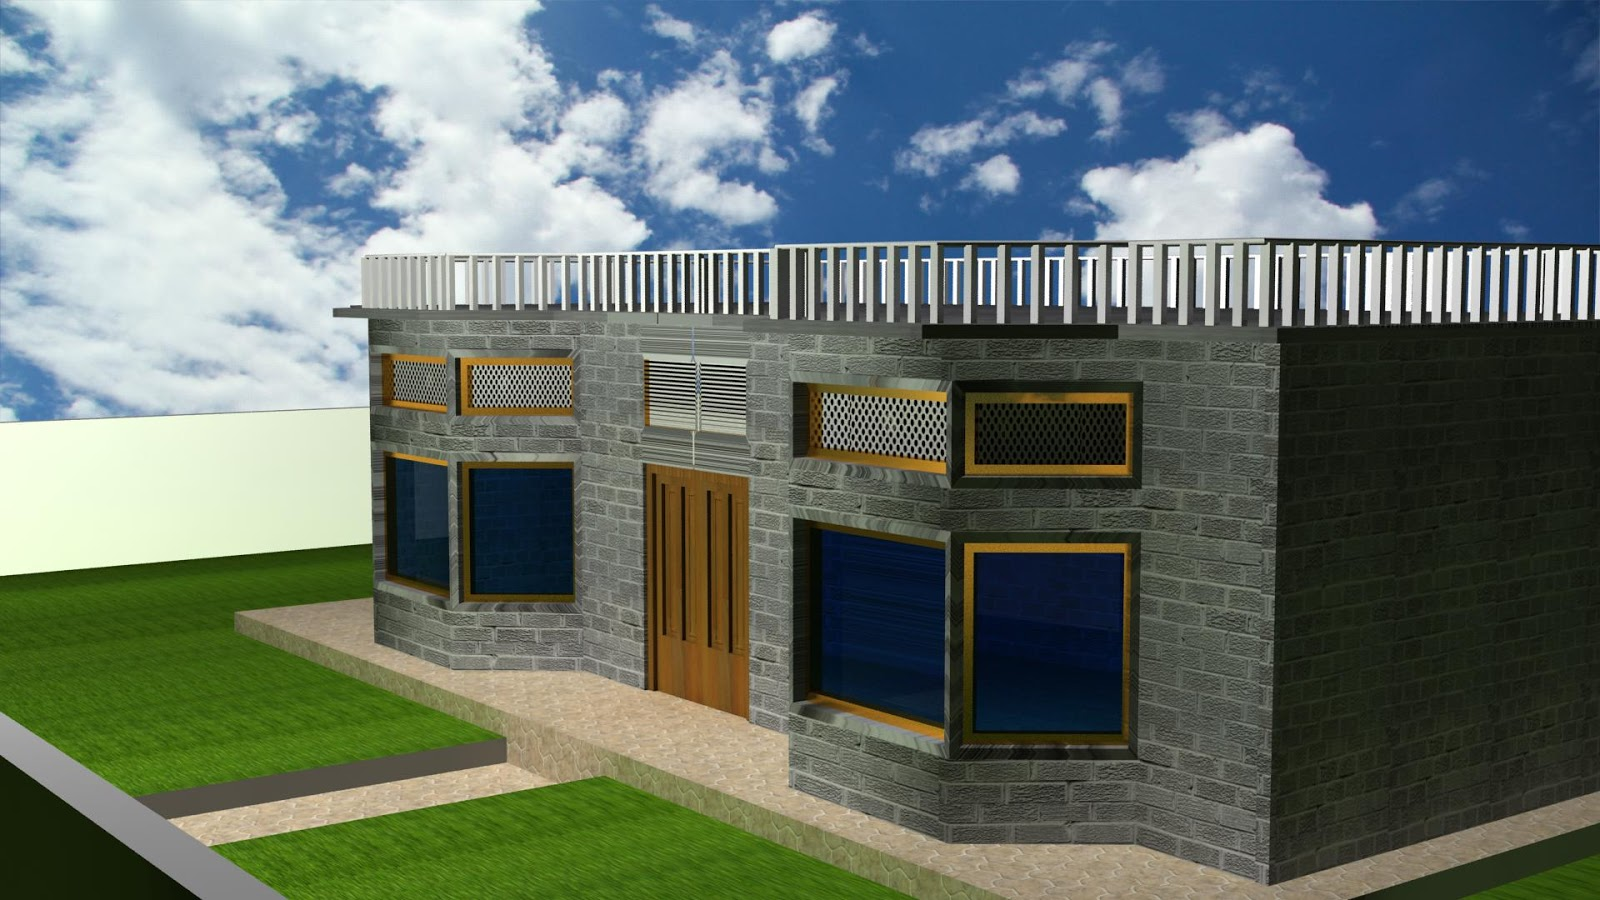 Nadeem Interior And Exterior Home And Building Designer Good In 2D+3D  Modeling And Rendering